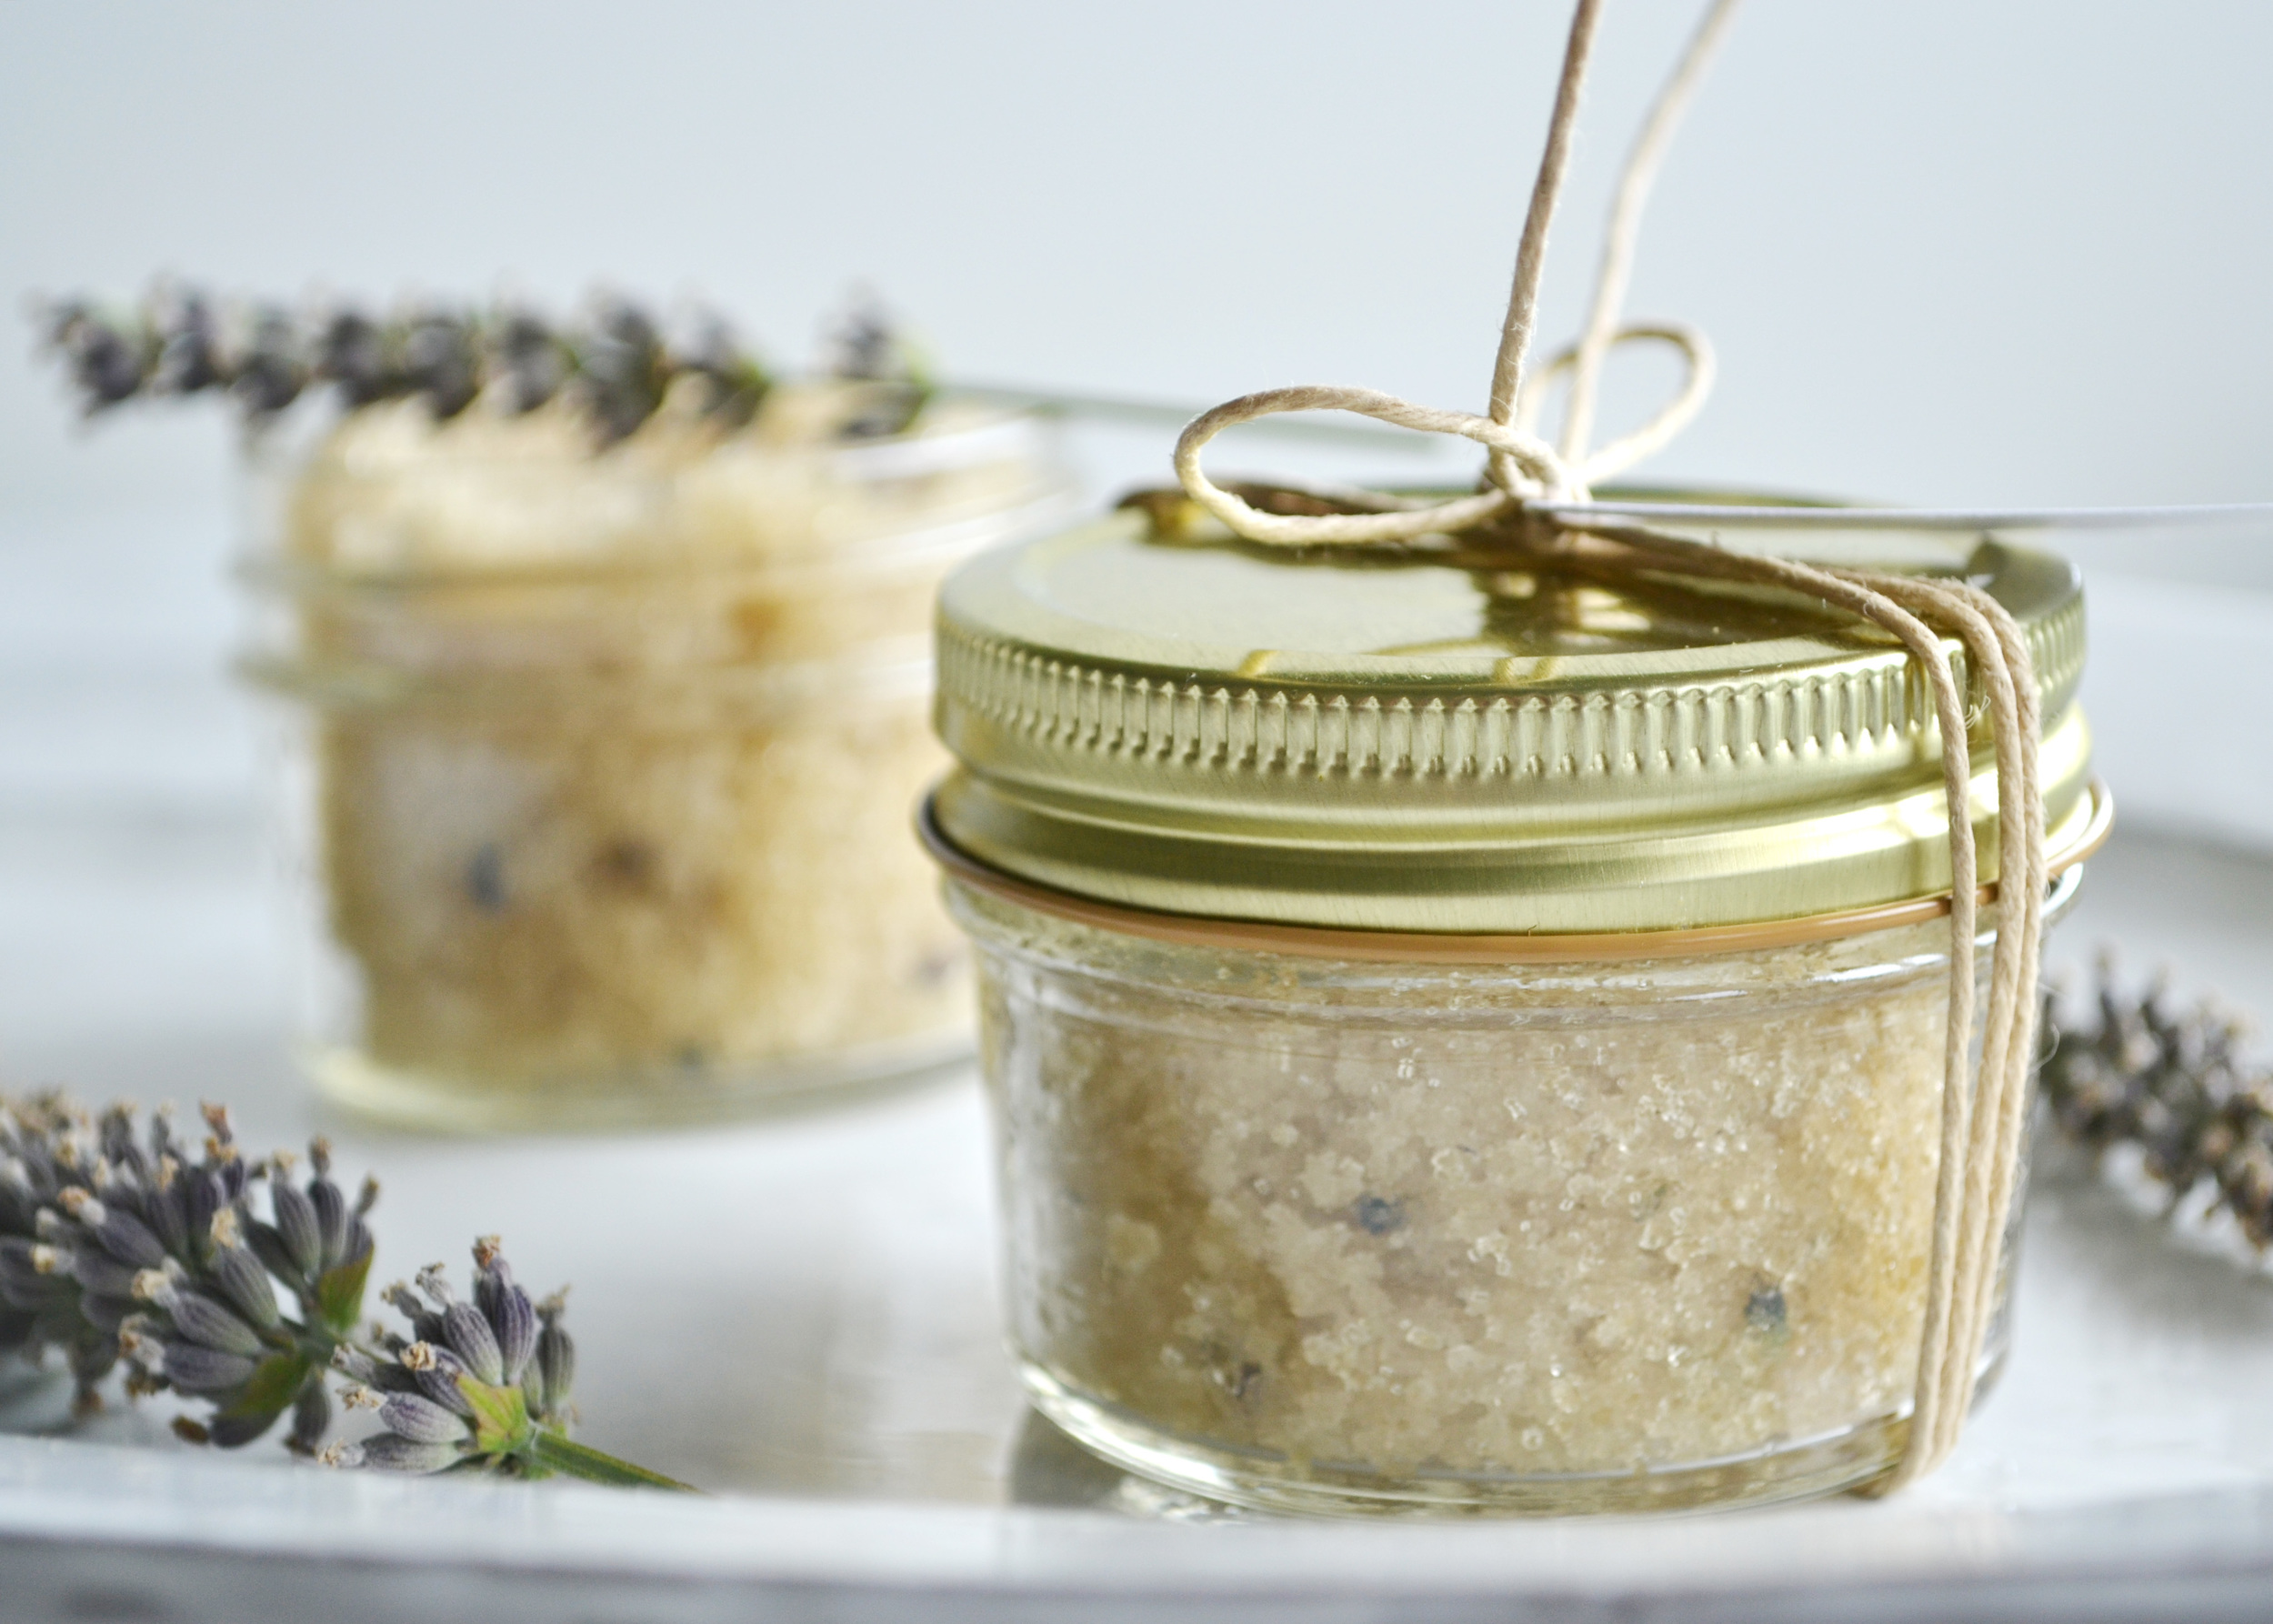 A very easy and organic sugar scrub recipe (perfect to make for a gift!) from boxwoodavenue.com